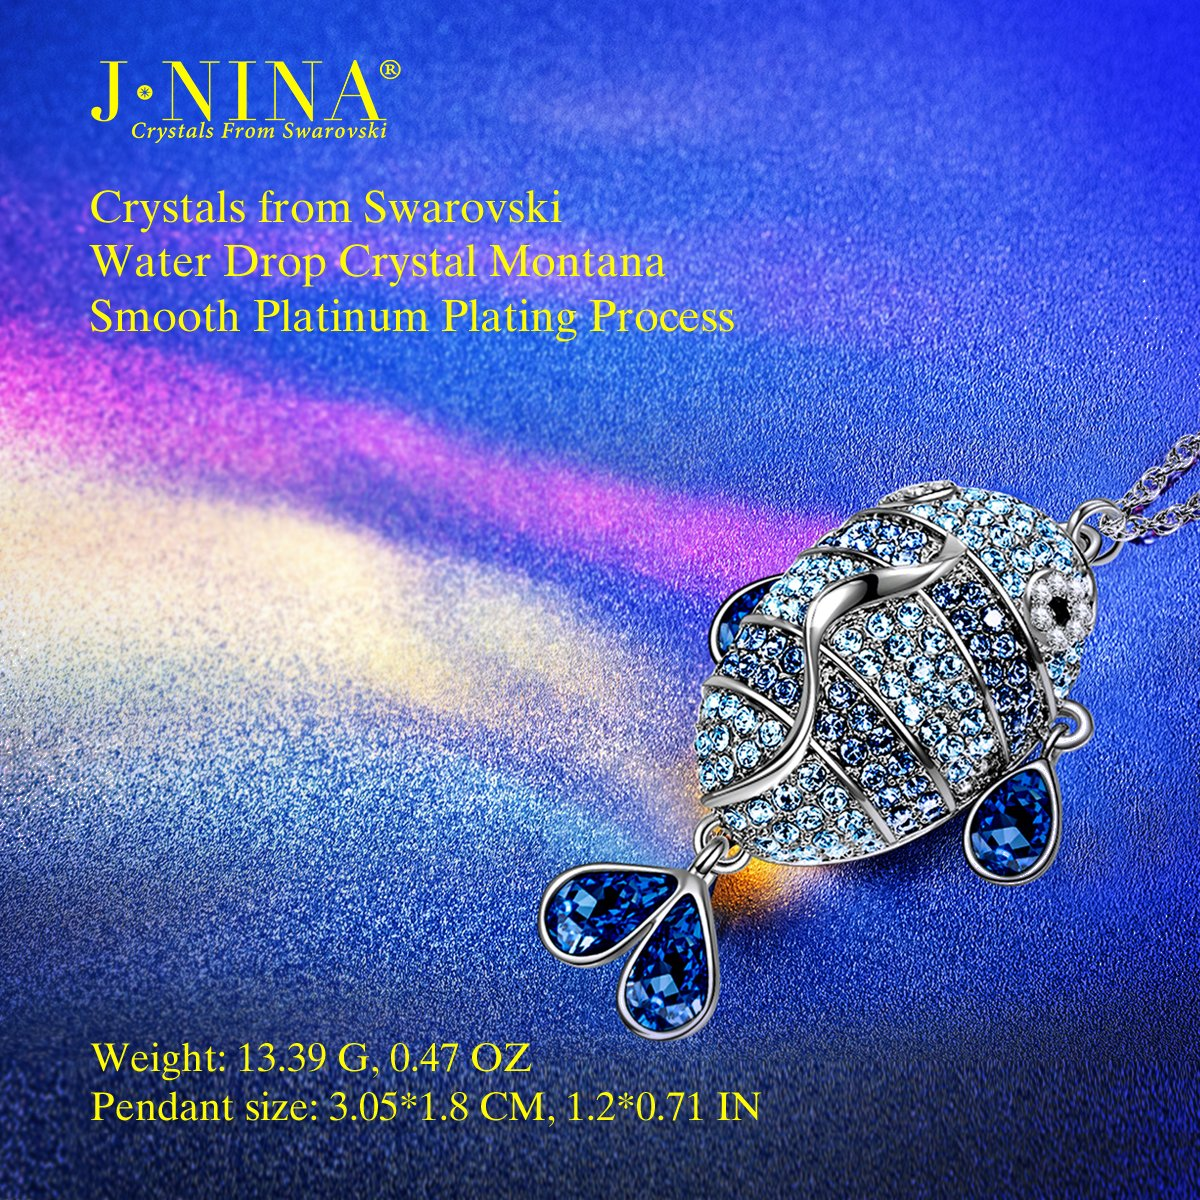 Amazon.com: J.NINA Fish Pendant Necklace Jewelry with Blue Sapphire Swarovski  Crystals for Women Birthday Anniversary Valentines for Wife Lover  Girlfriend ...